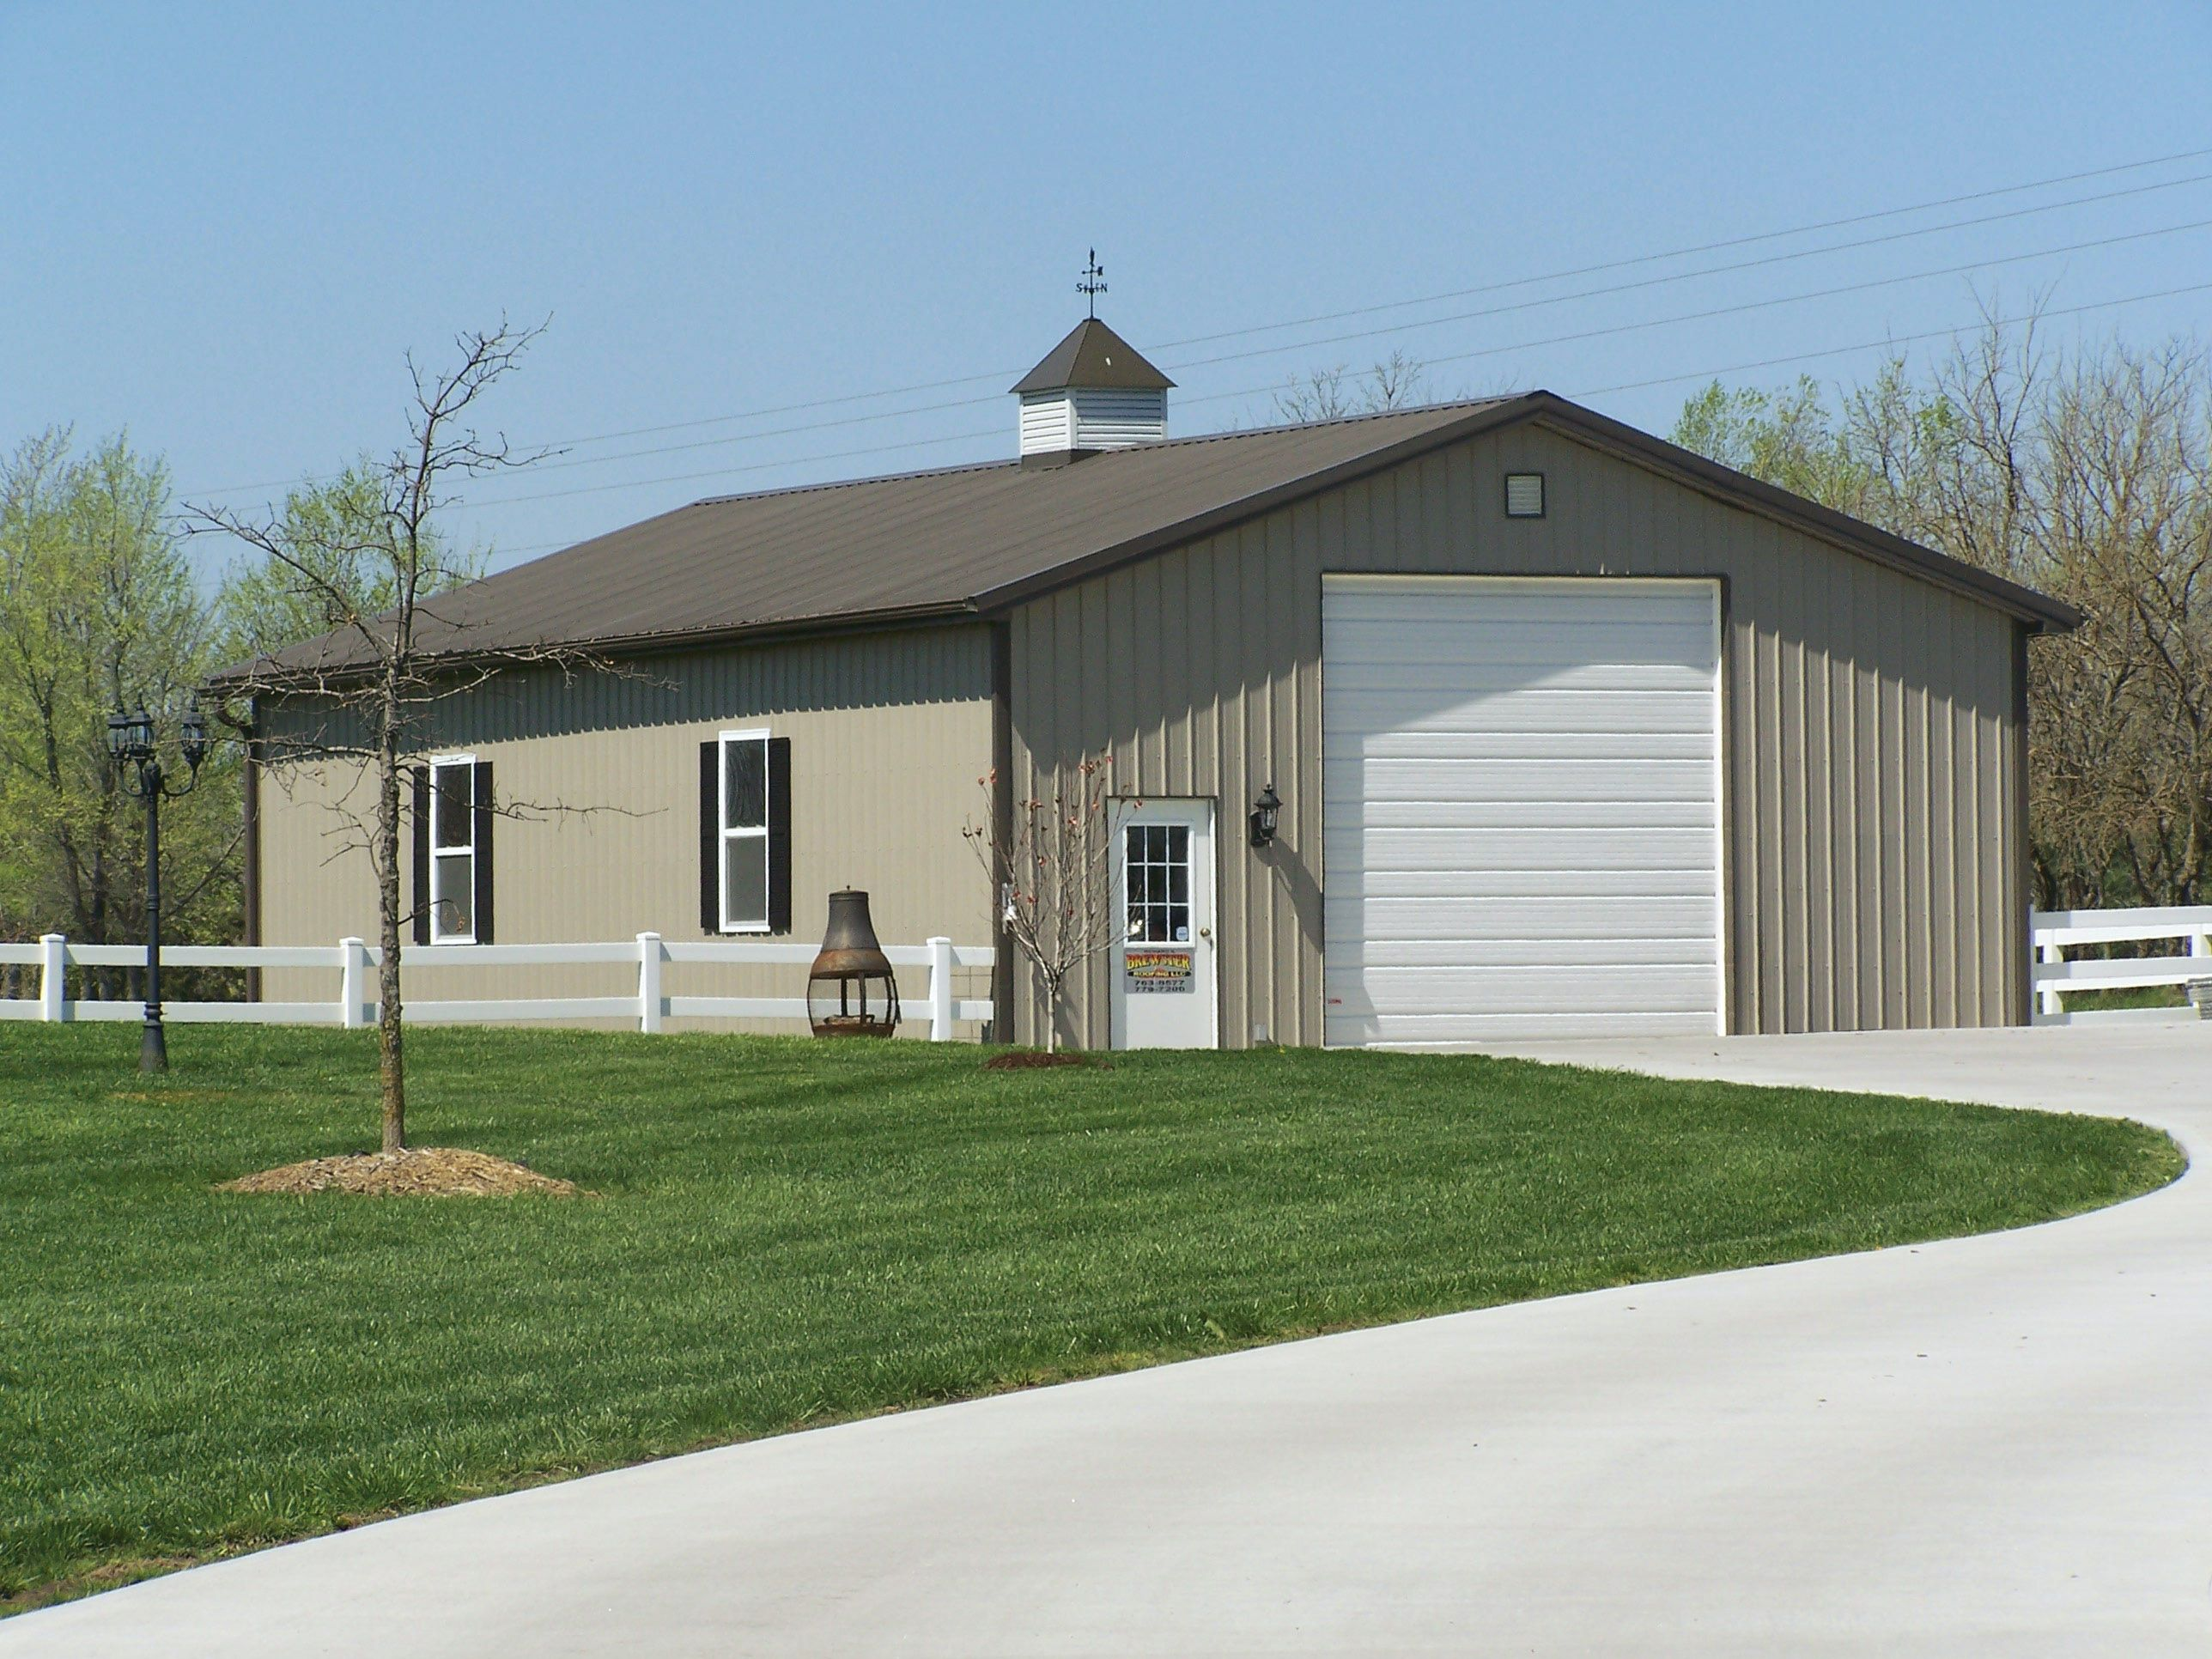 17 Best ideas about Mueller Steel Buildings on Pinterest Metal